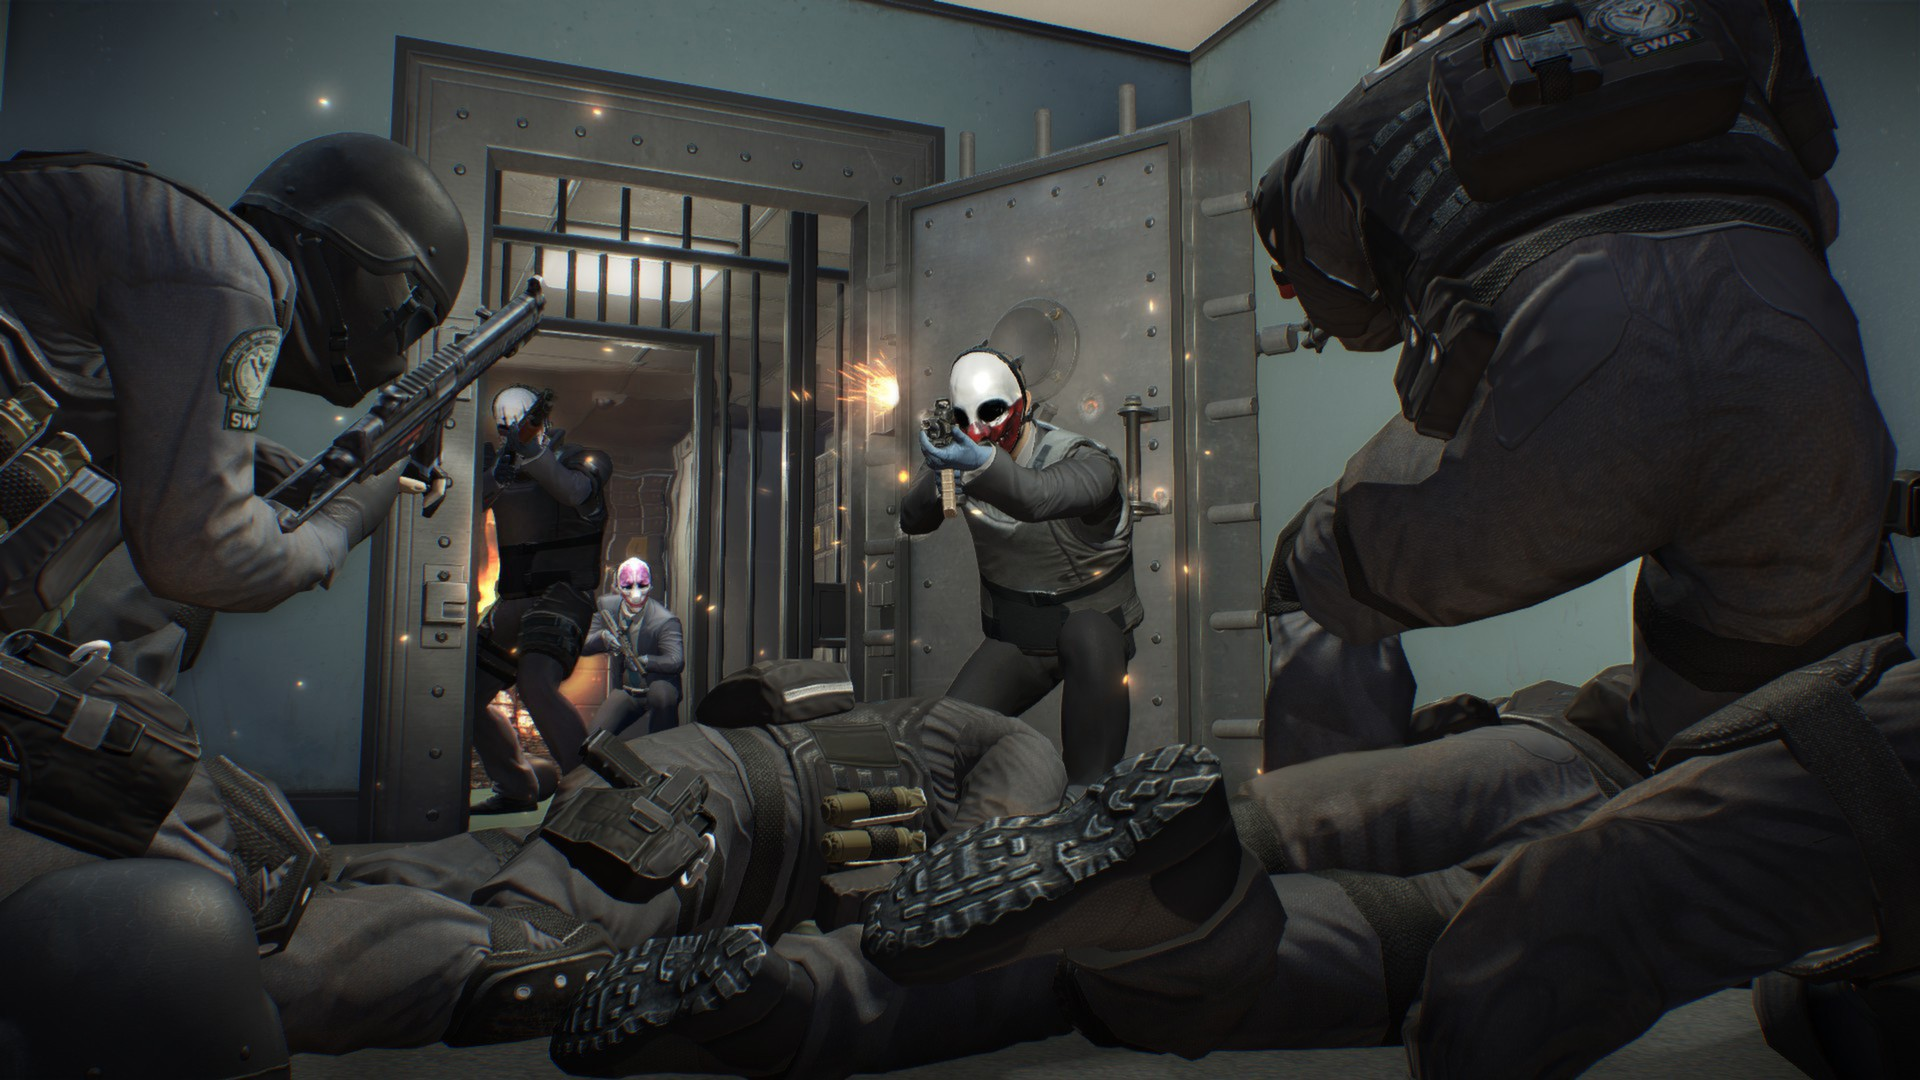 Este trailer gameplay de Payday 2 no deja testigos [Vídeo]